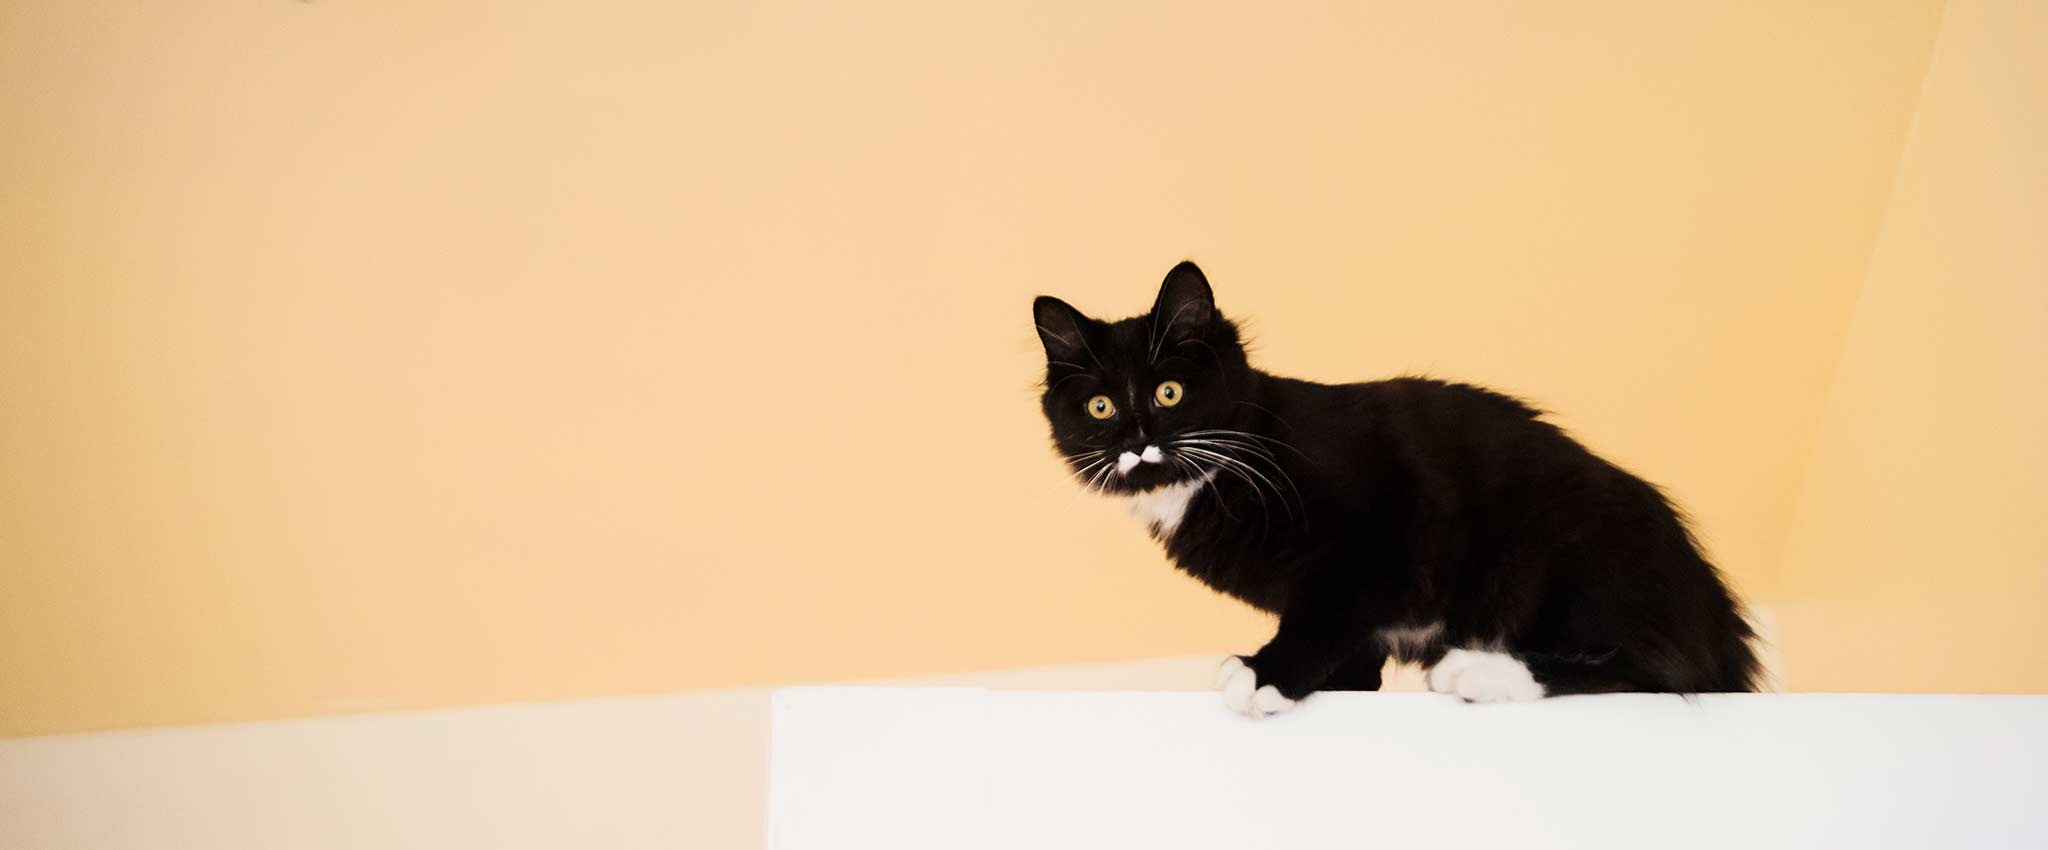 A small black cat on a counter